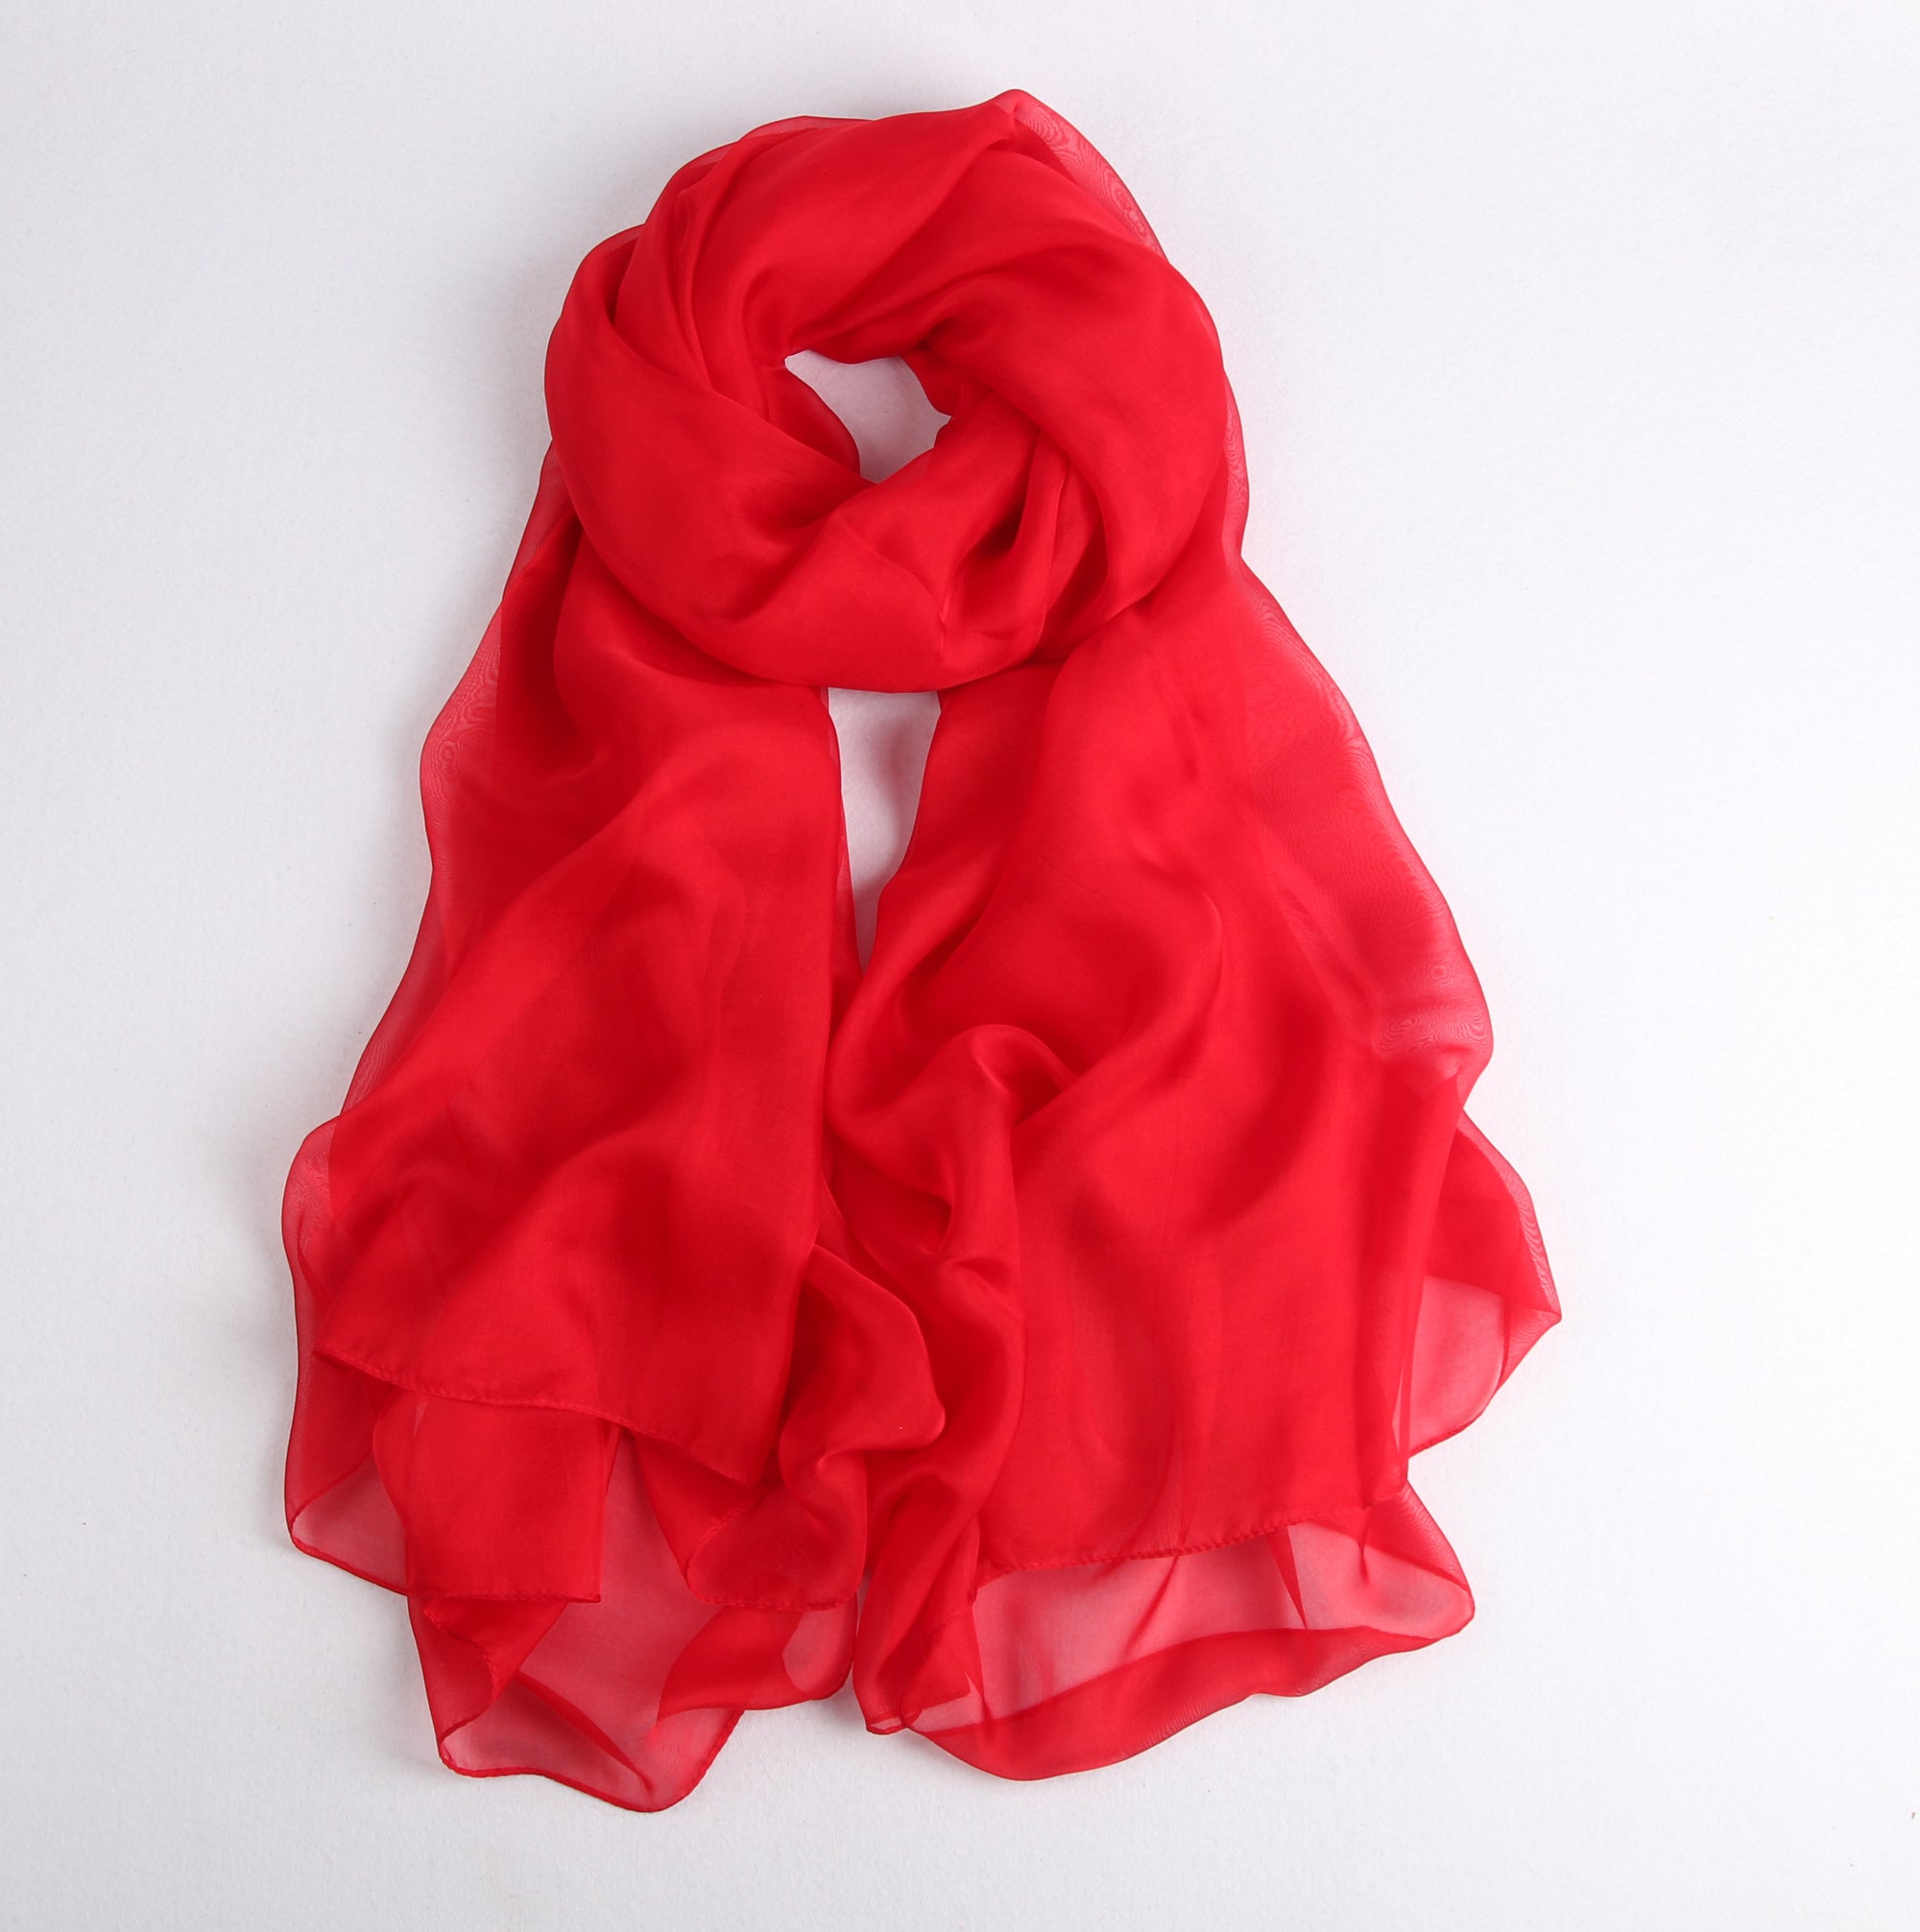 Large Silk Scarf Red - Vshine Silk and Shine Fashion Accessories